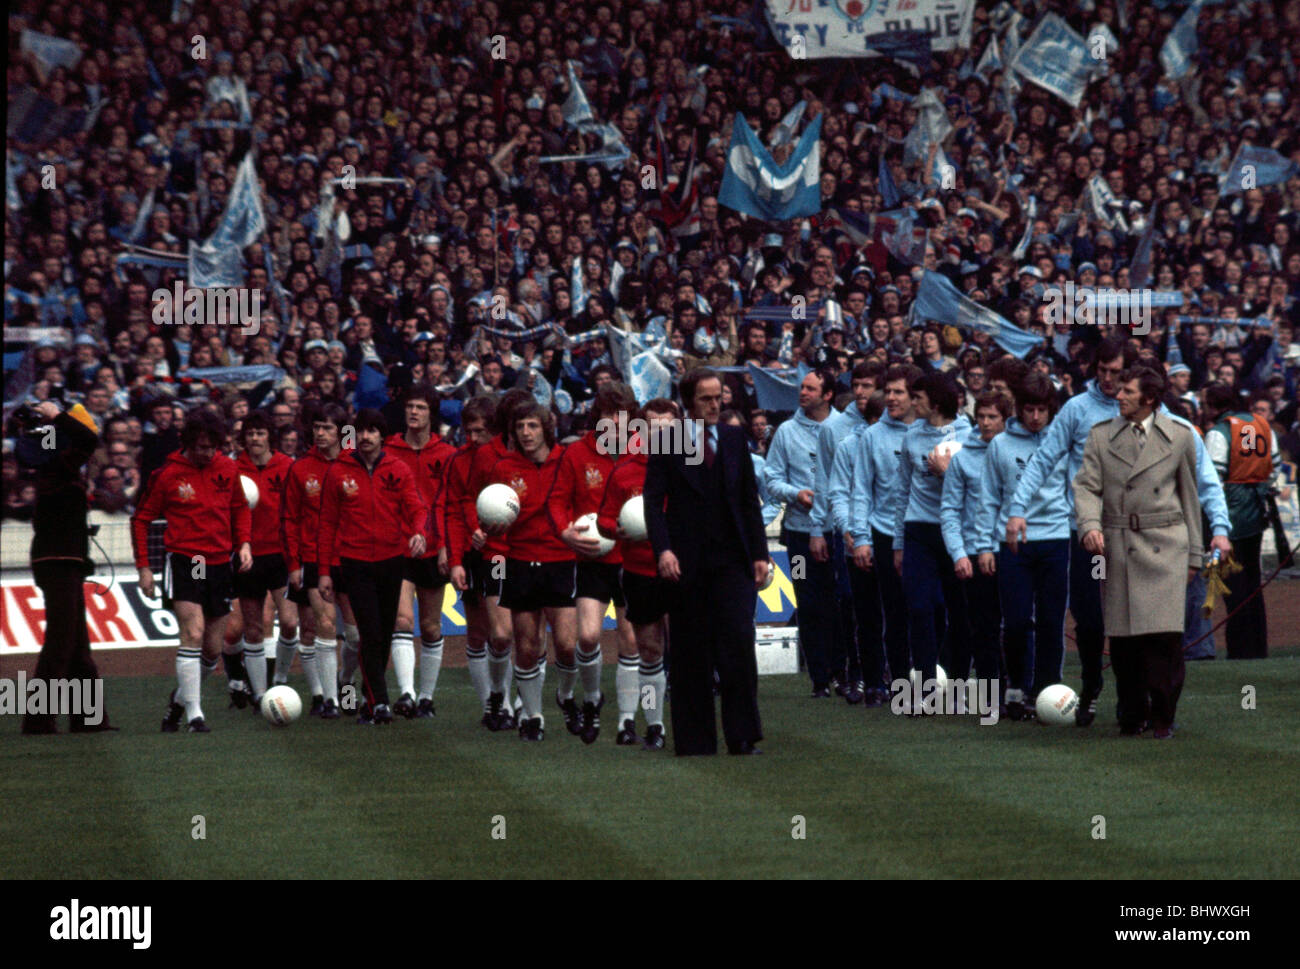 League Cup Final at Wembley Stadium Manchester City 2 v Newcastle United 1 The two teams come onto the pitch before - Stock Image